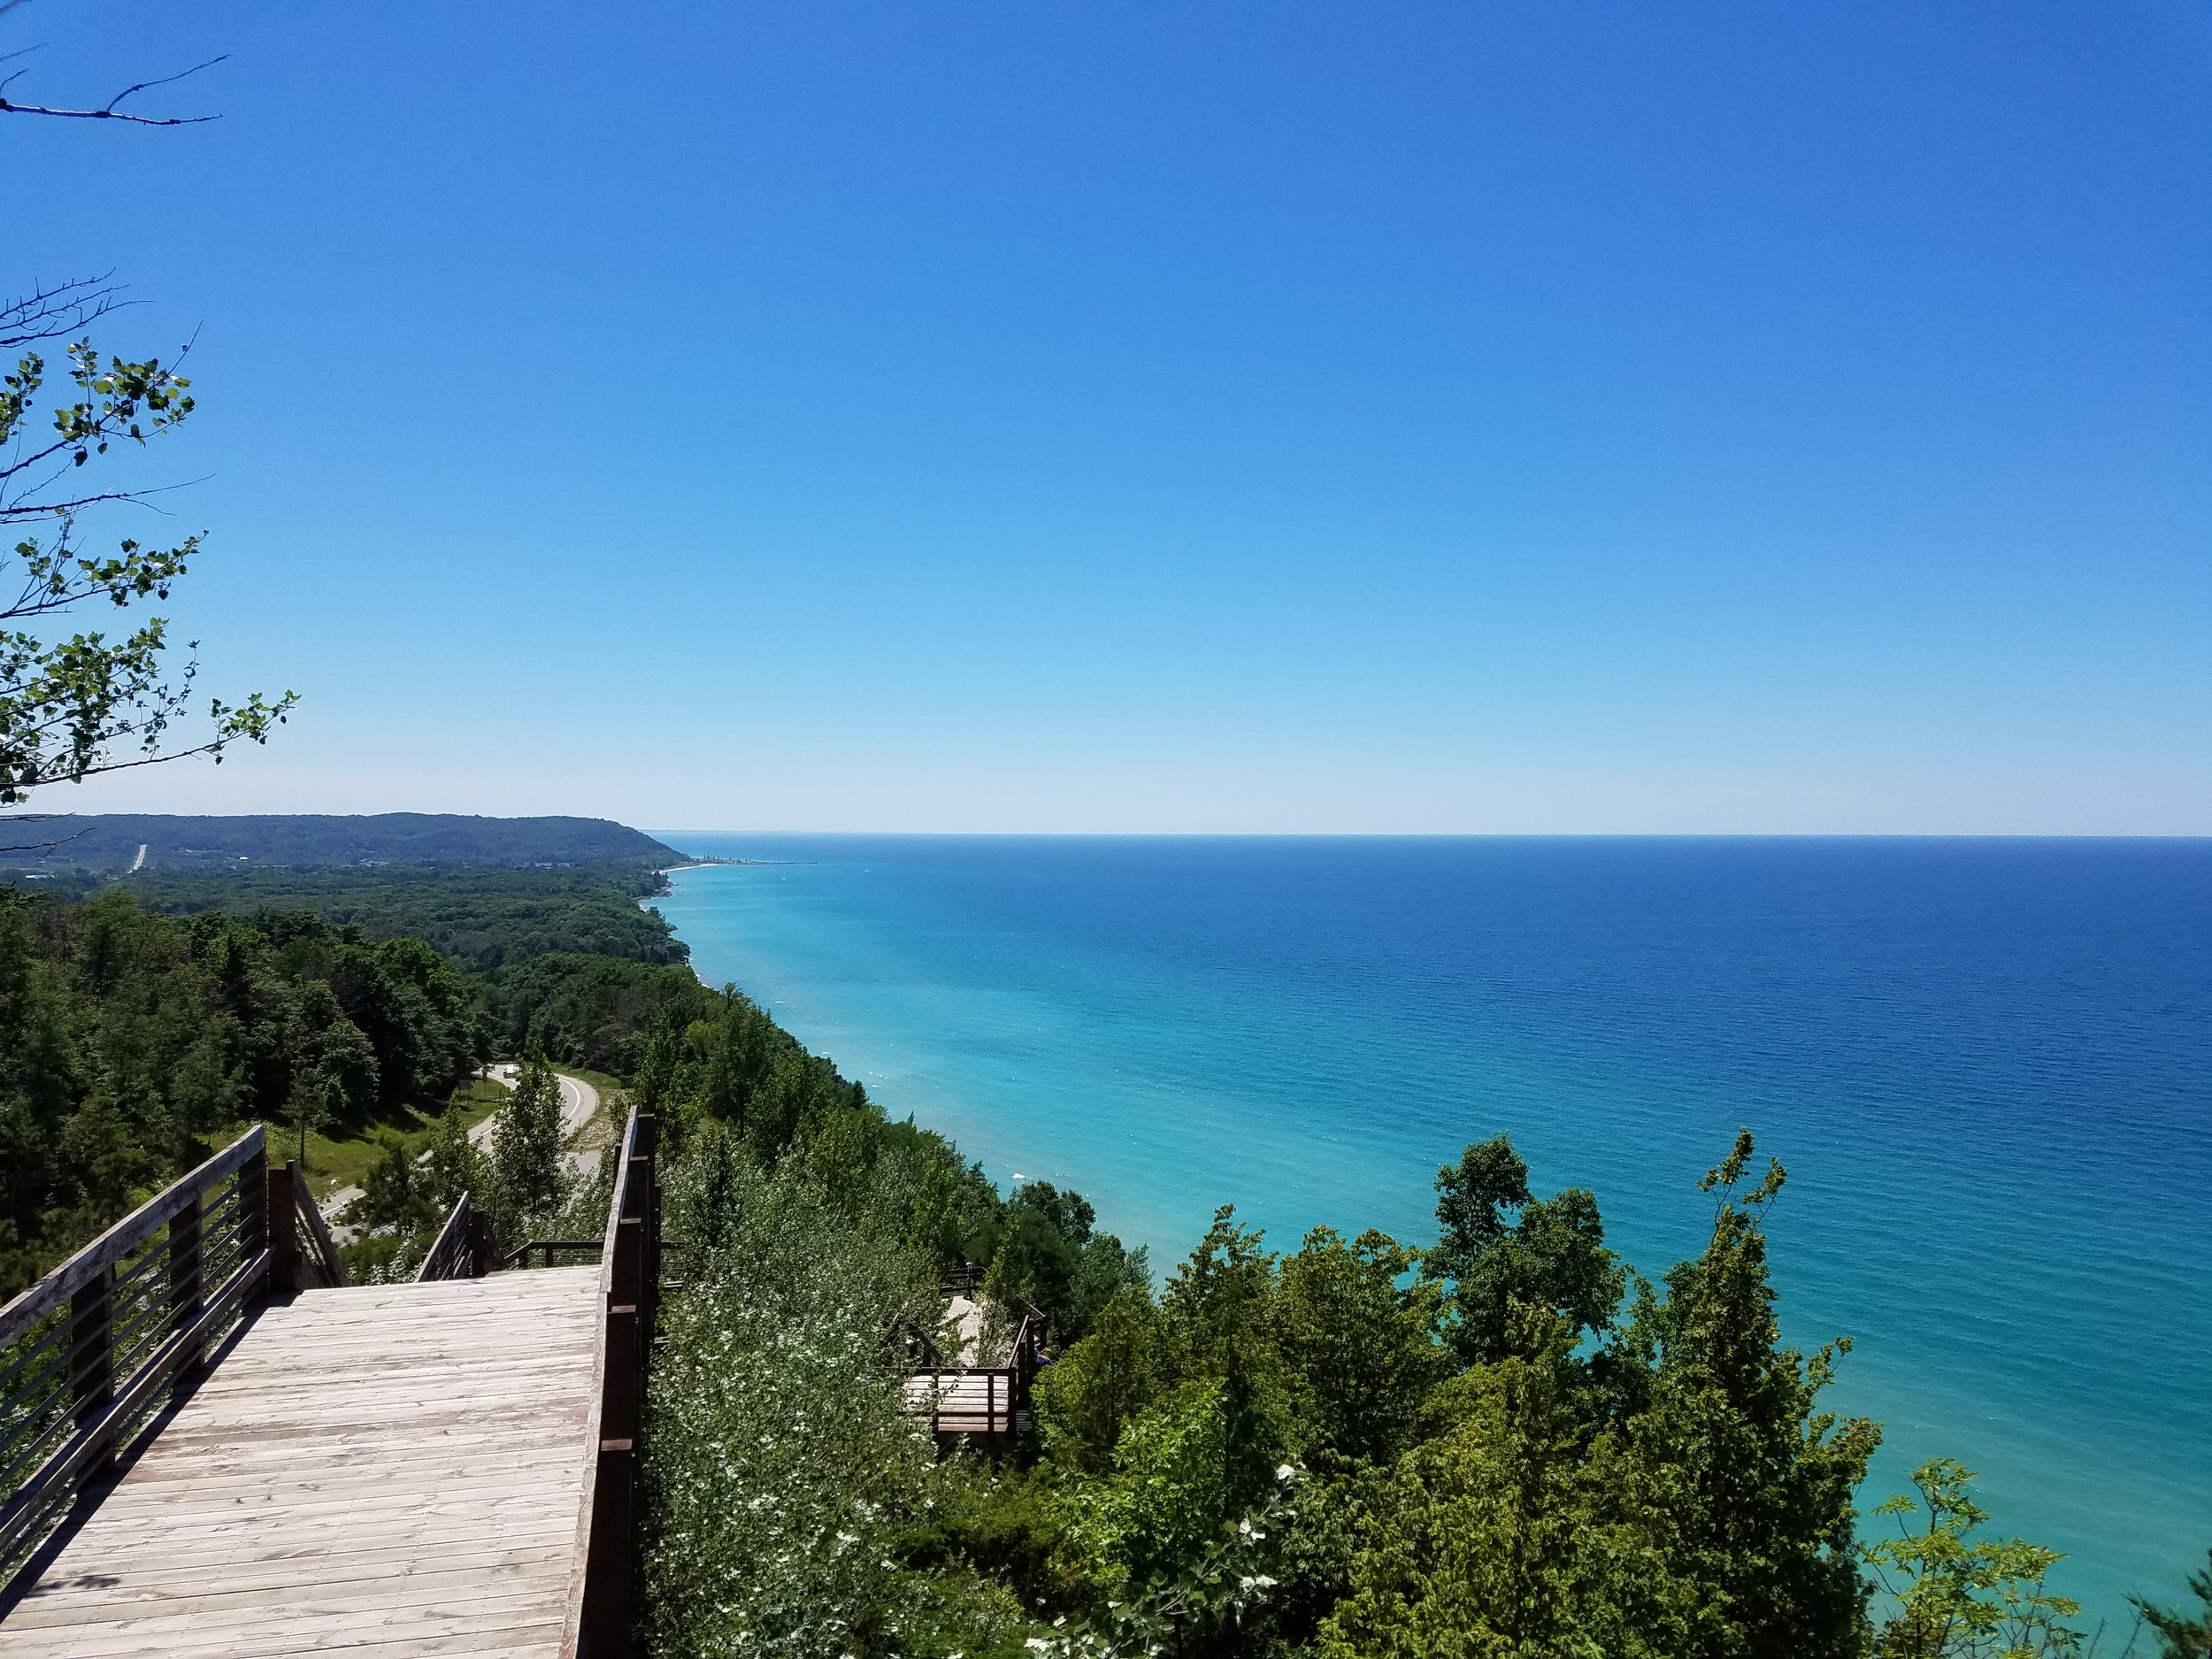 Lake Michigan views from the Arcadia Lookout on M-22